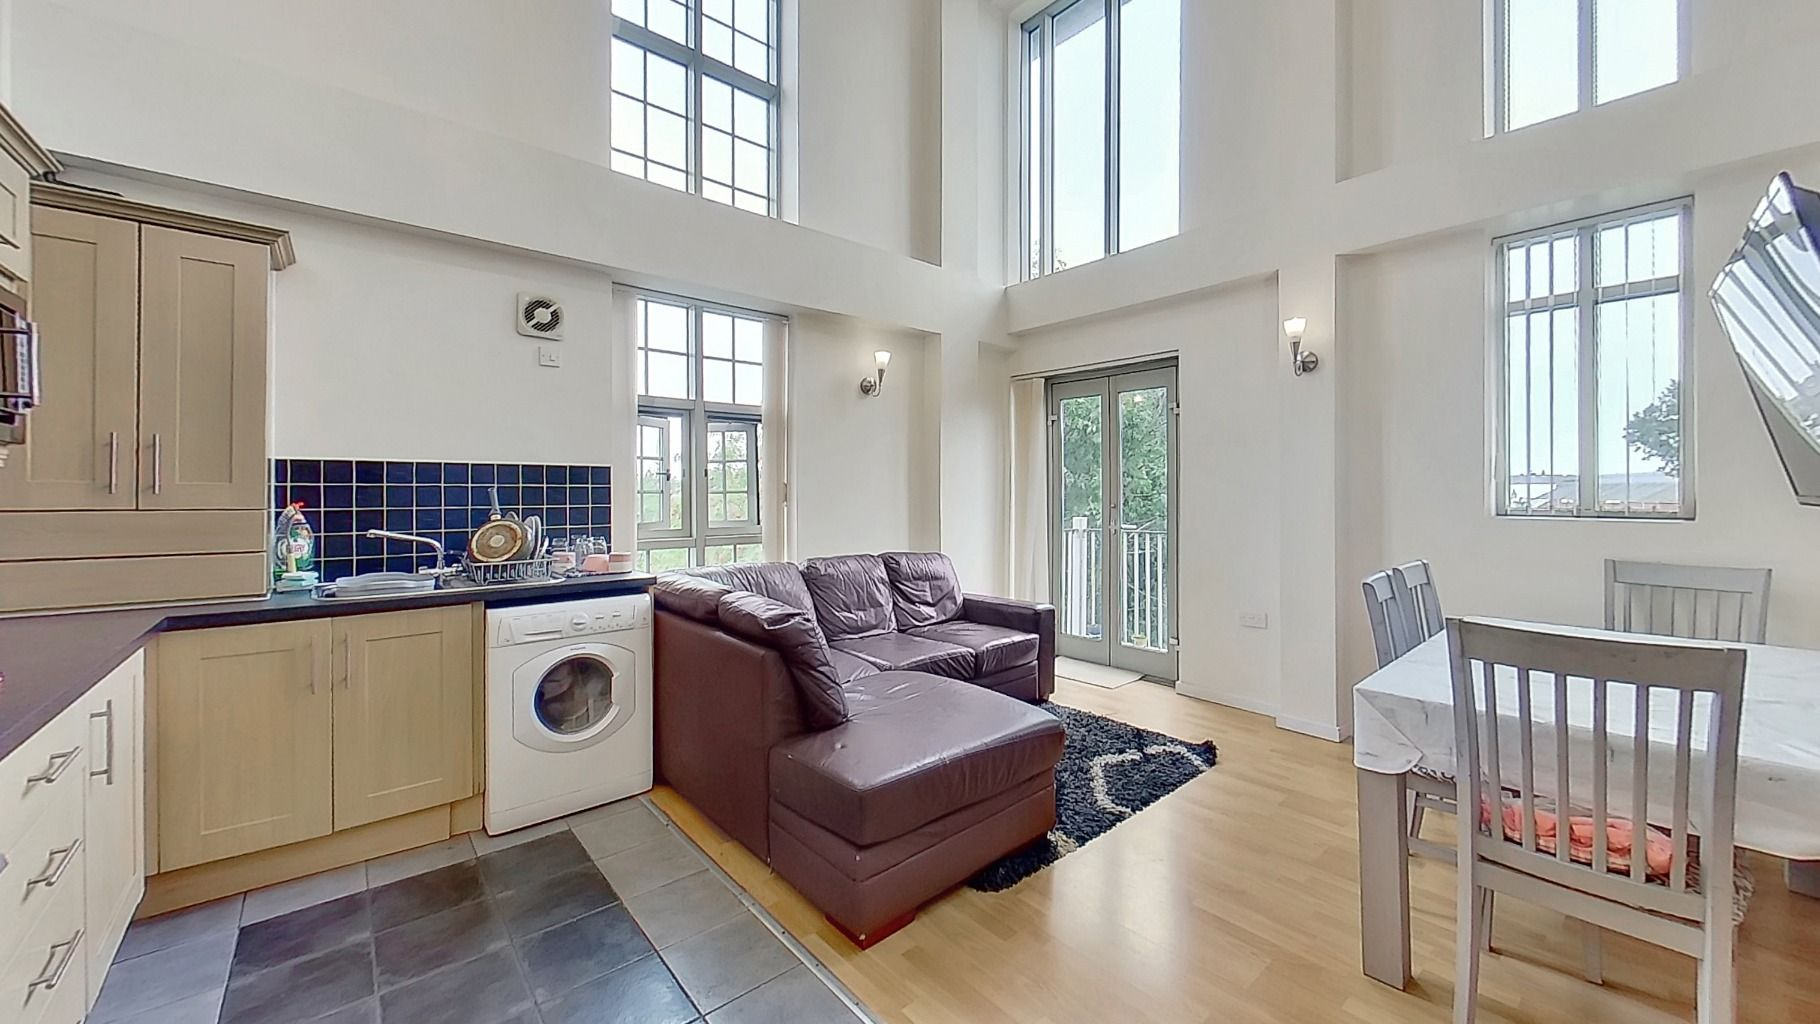 Property photo 1 of 8. 47-Caxton-Court-07262021_140914